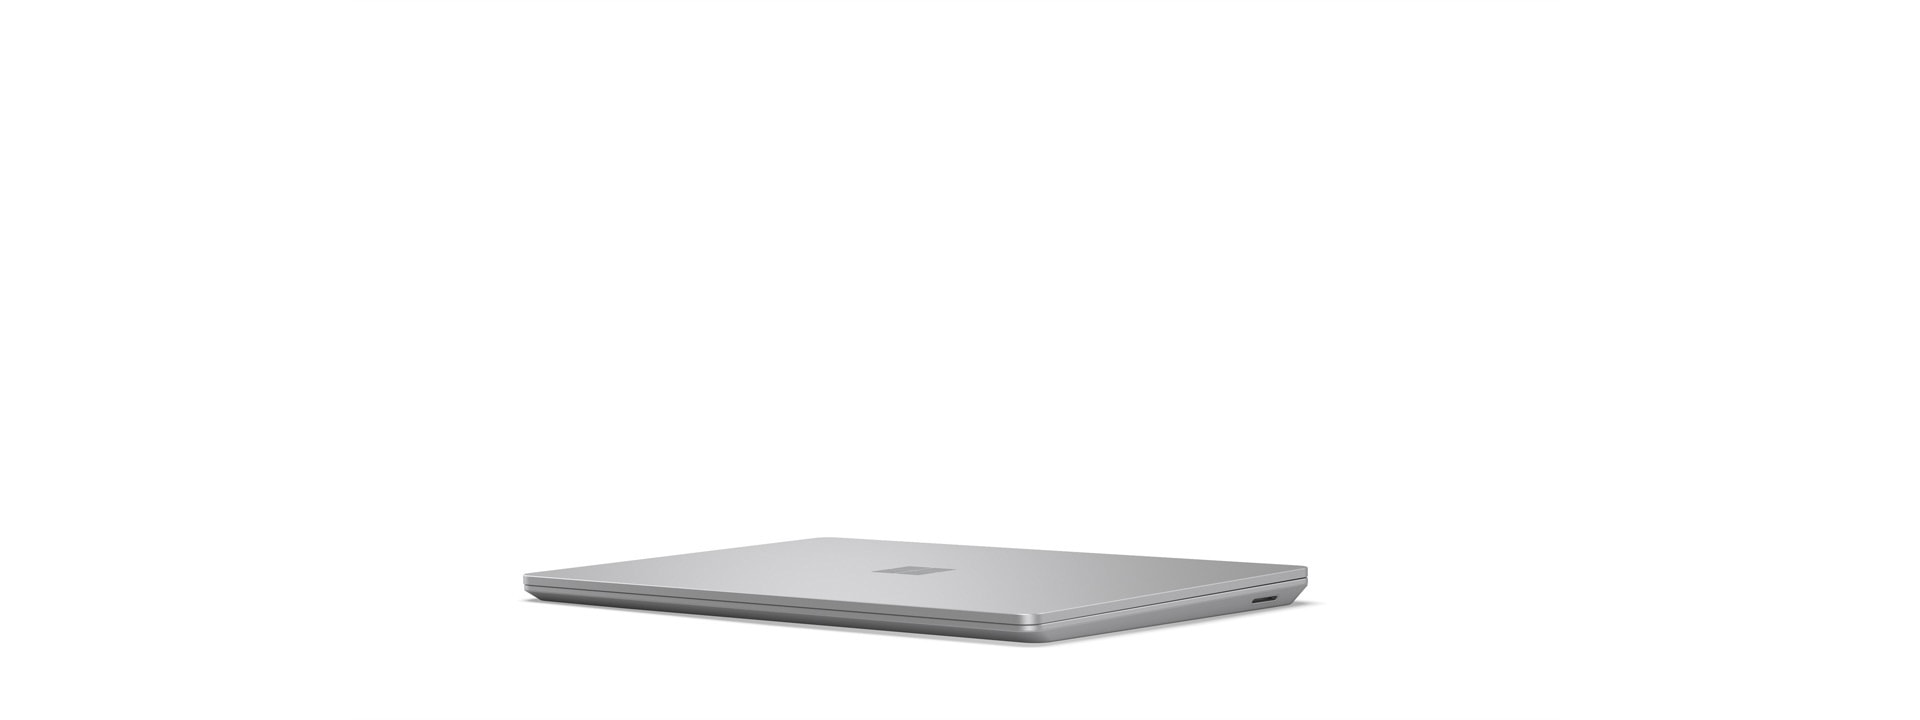 A Surface Laptop Go is shown in the closed position.